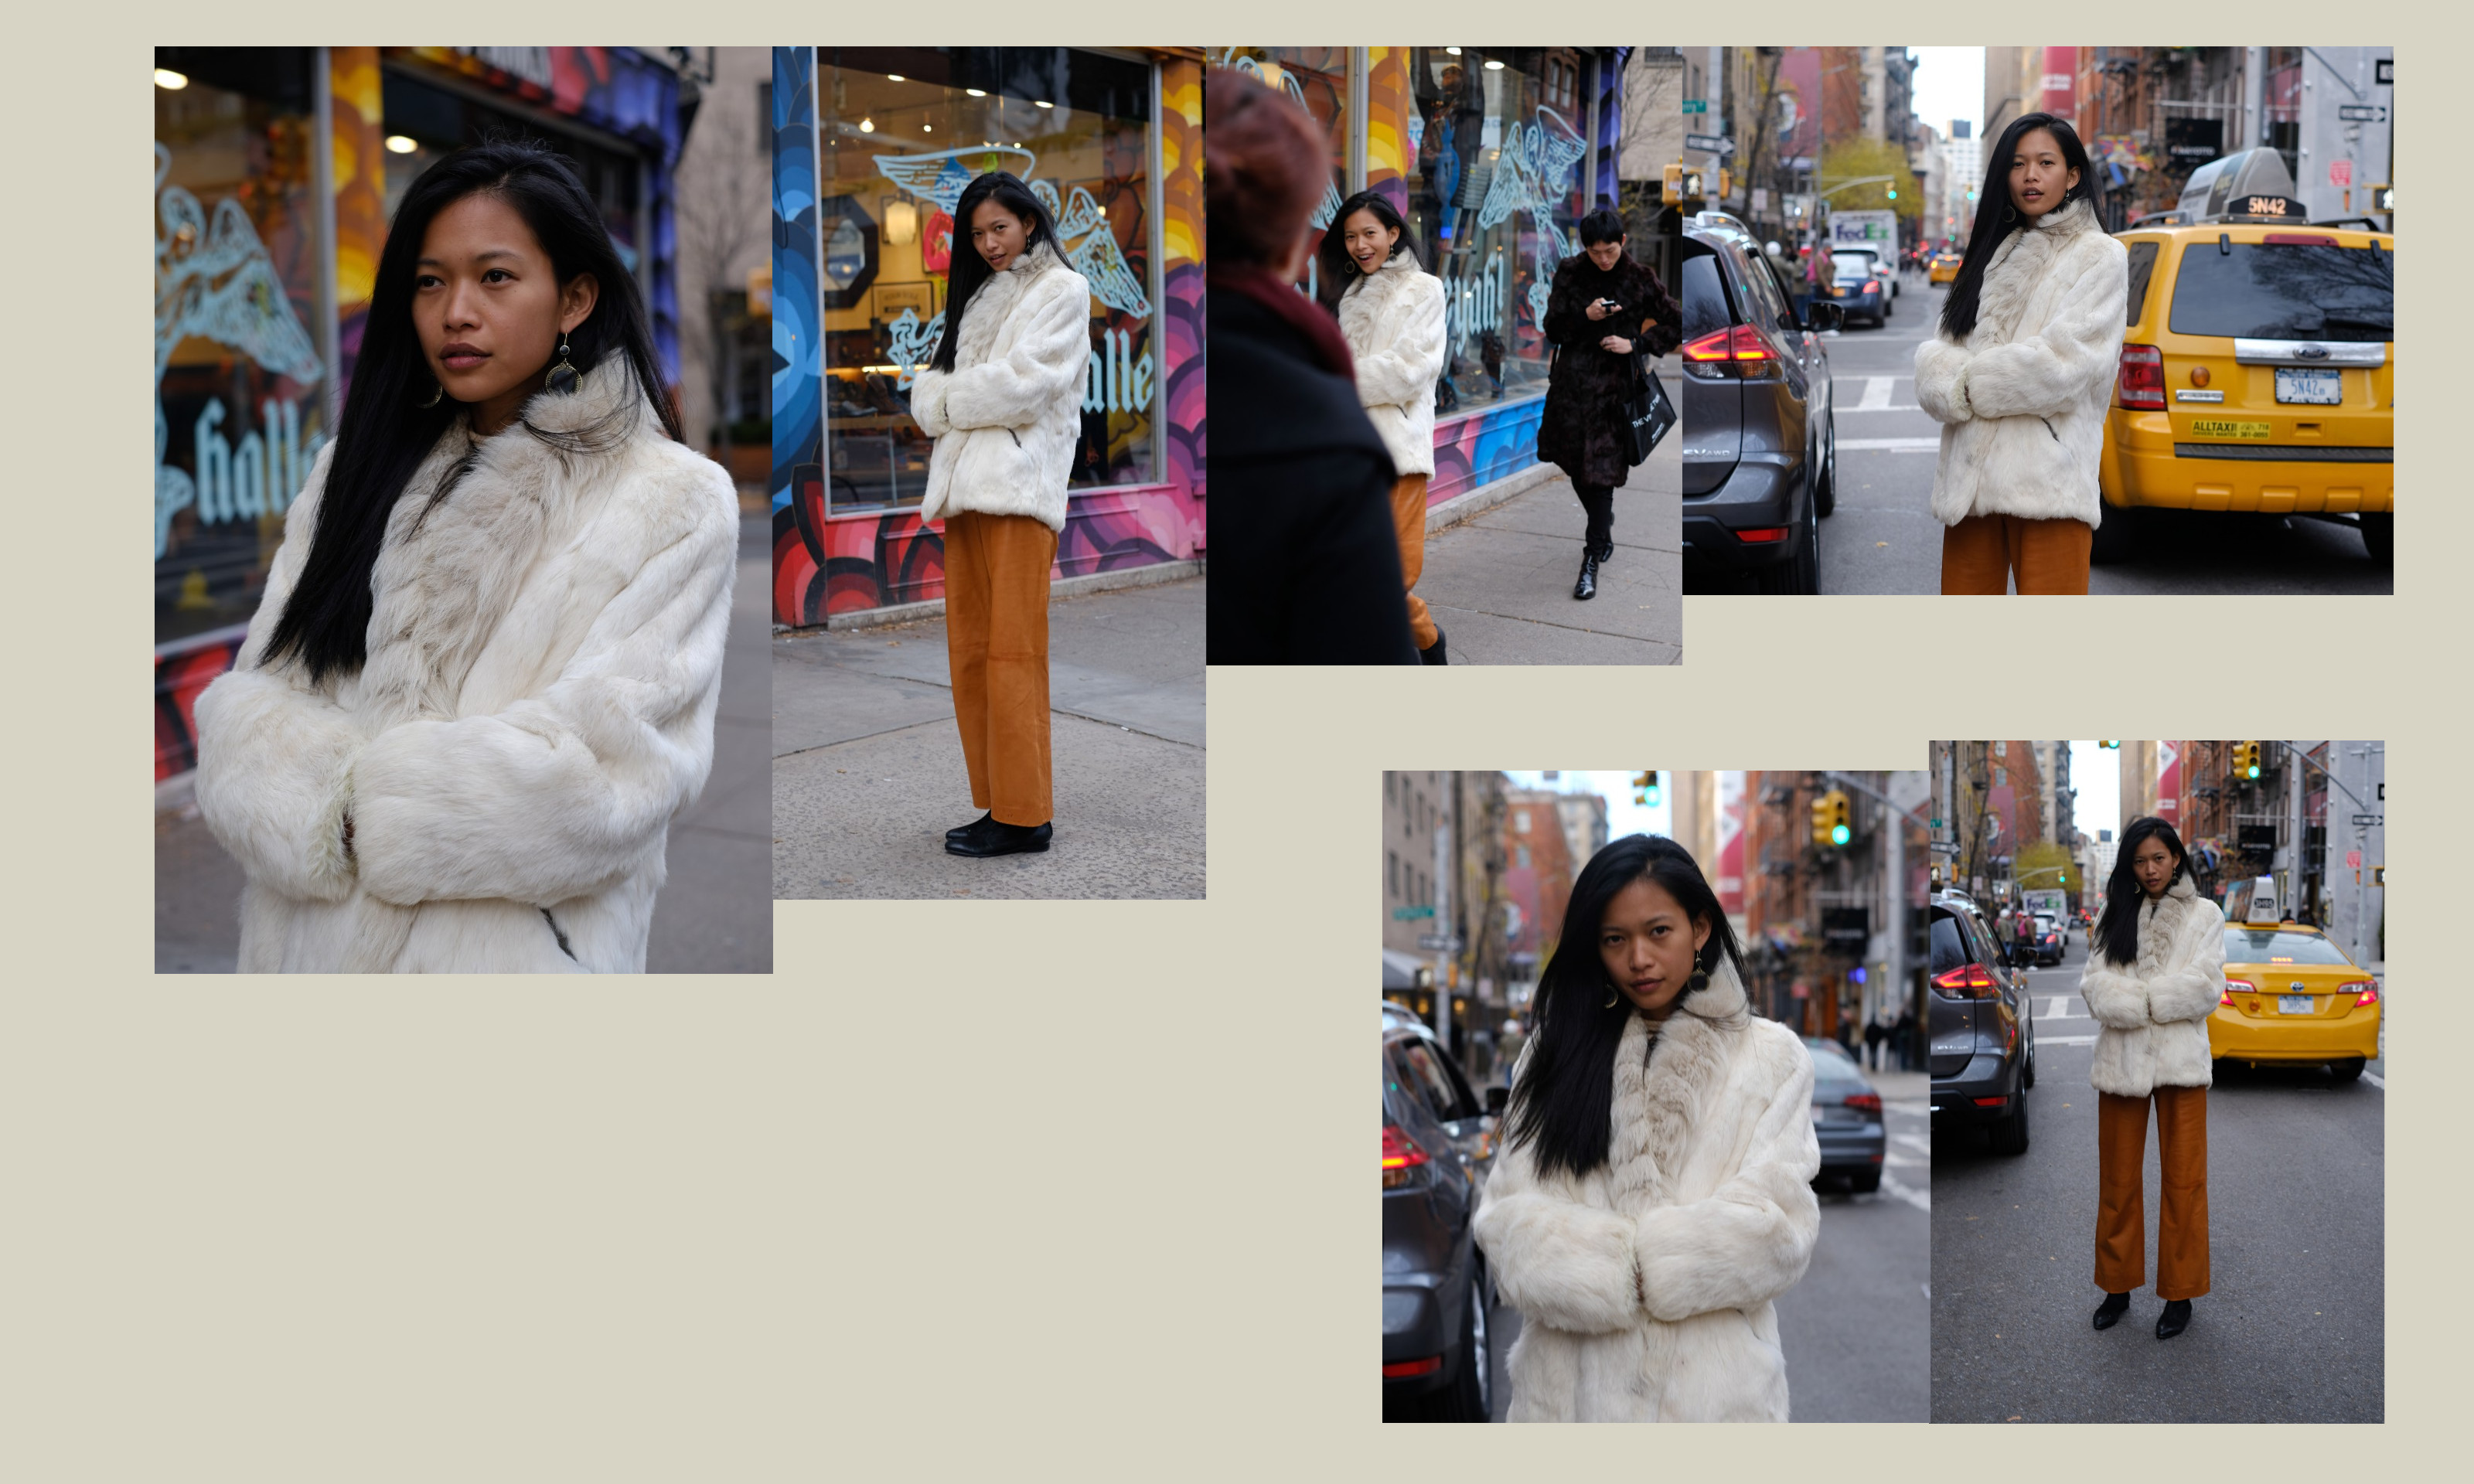 photo collage of model in white jacket